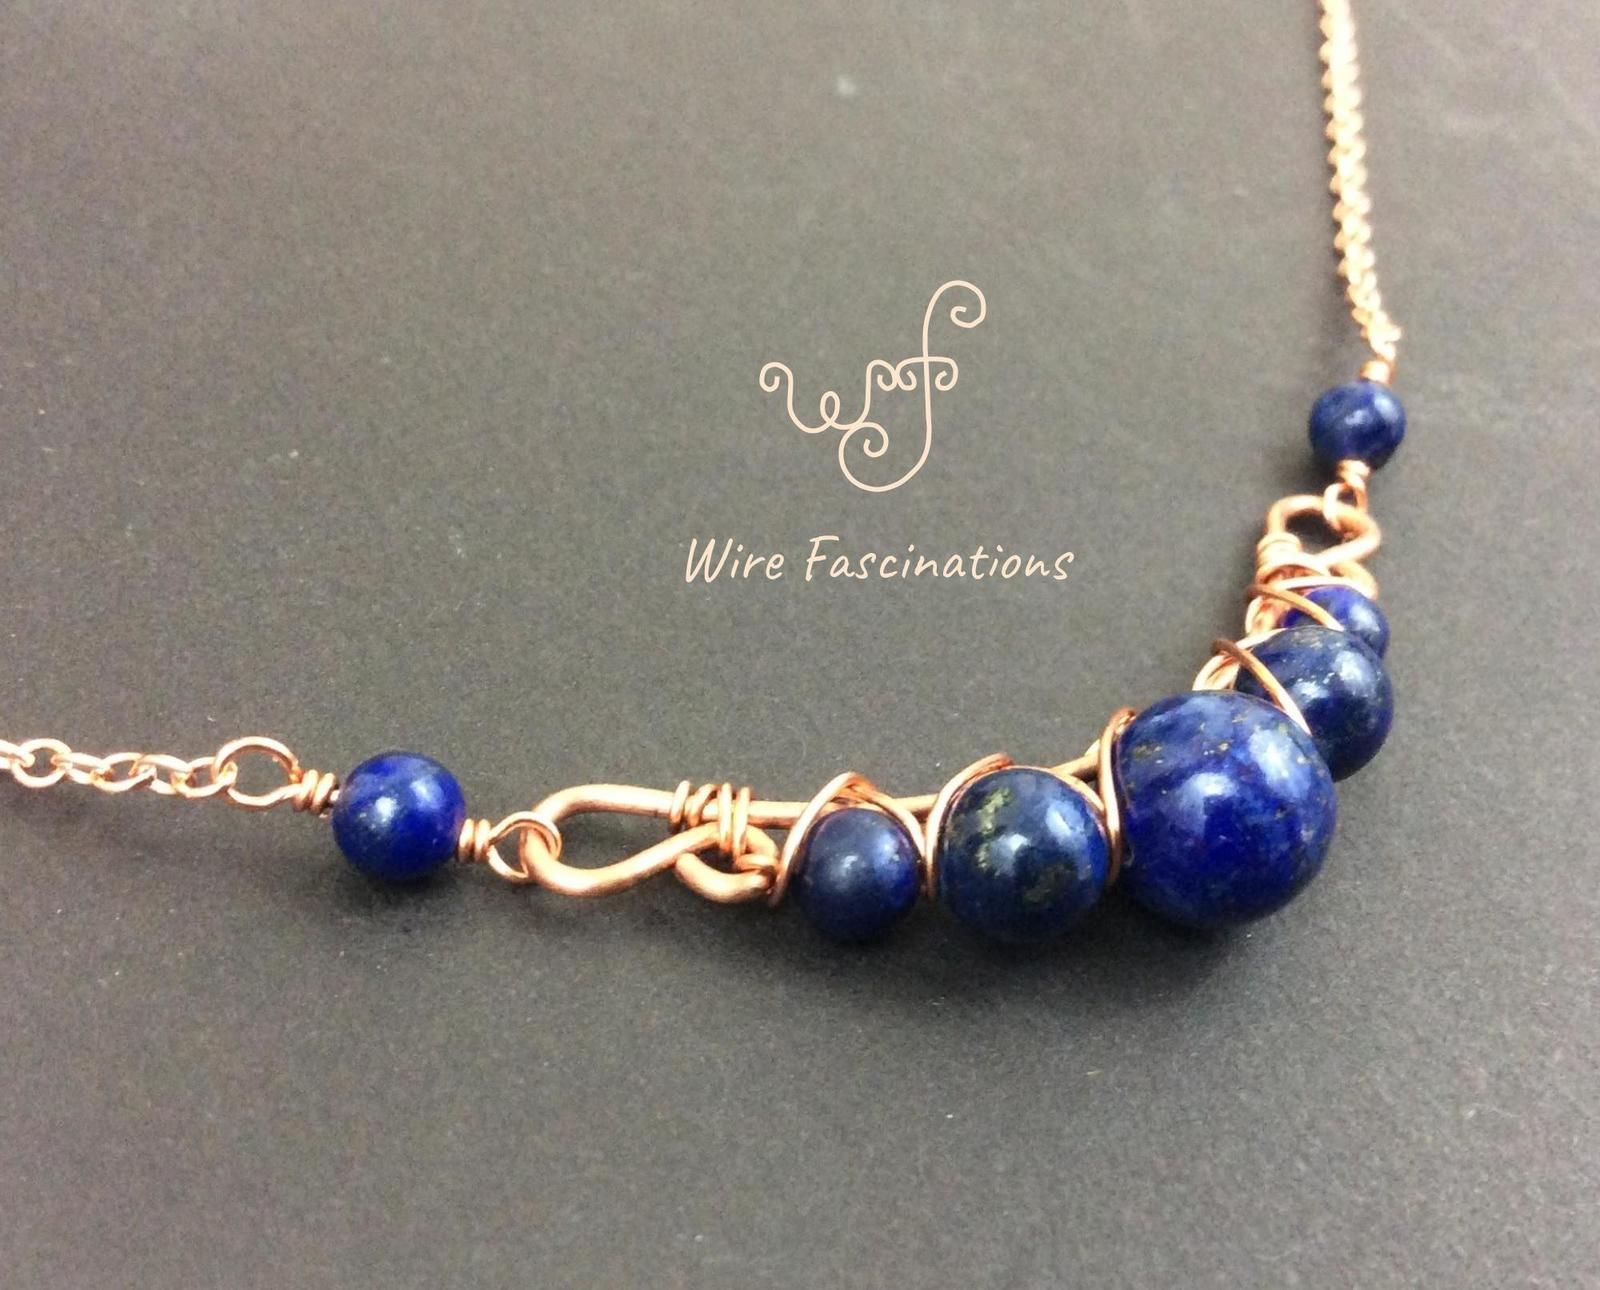 Handmade lapis lazuli necklace: criss cross copper wire wrapped image 6